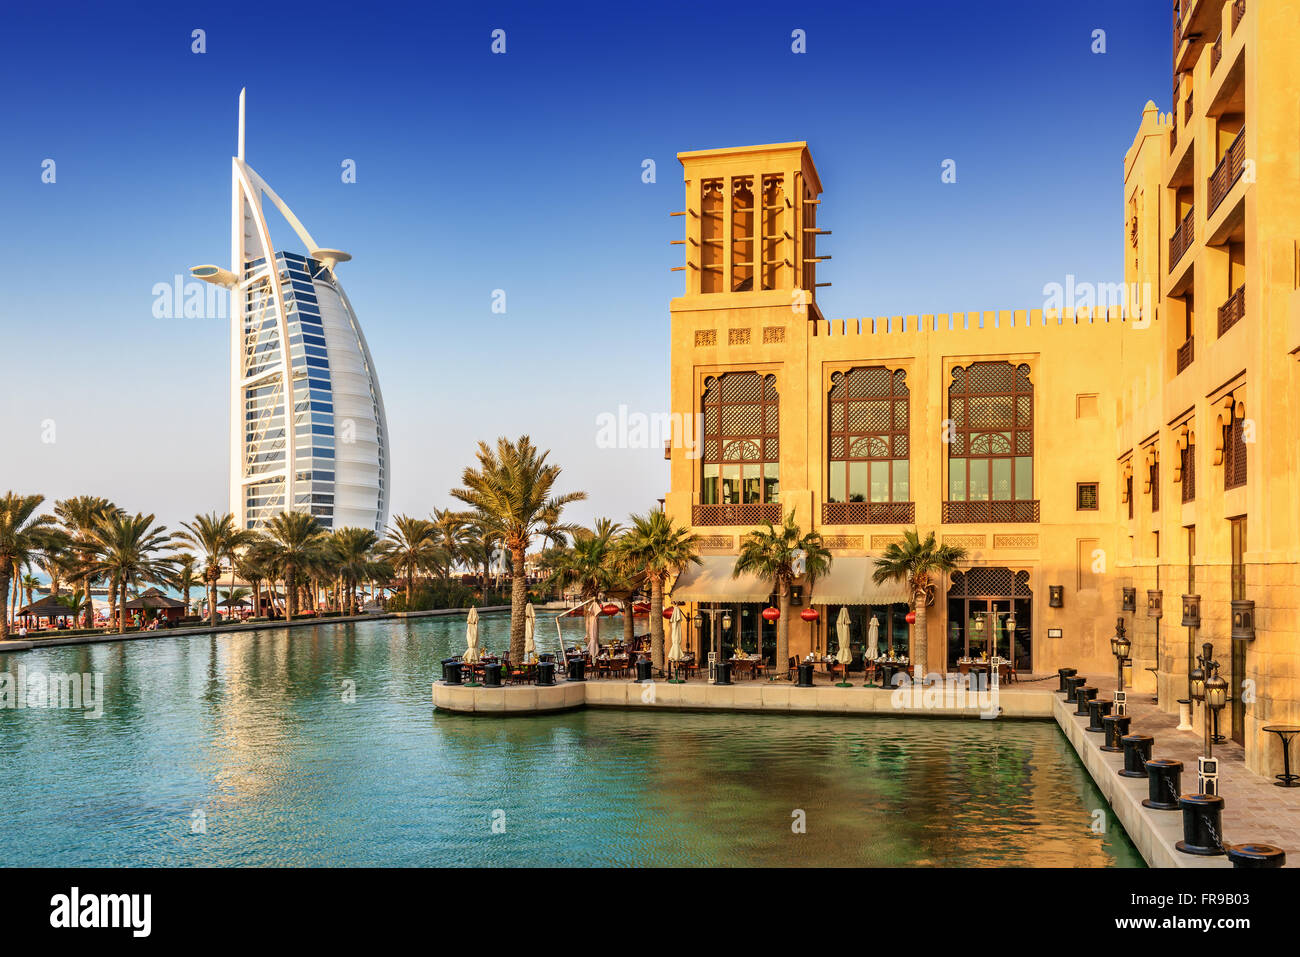 View of Burj Al Arab hotel from Madinat Jumeirah hotel in Dubai, United Arab Emirates, Middle East - Stock Image